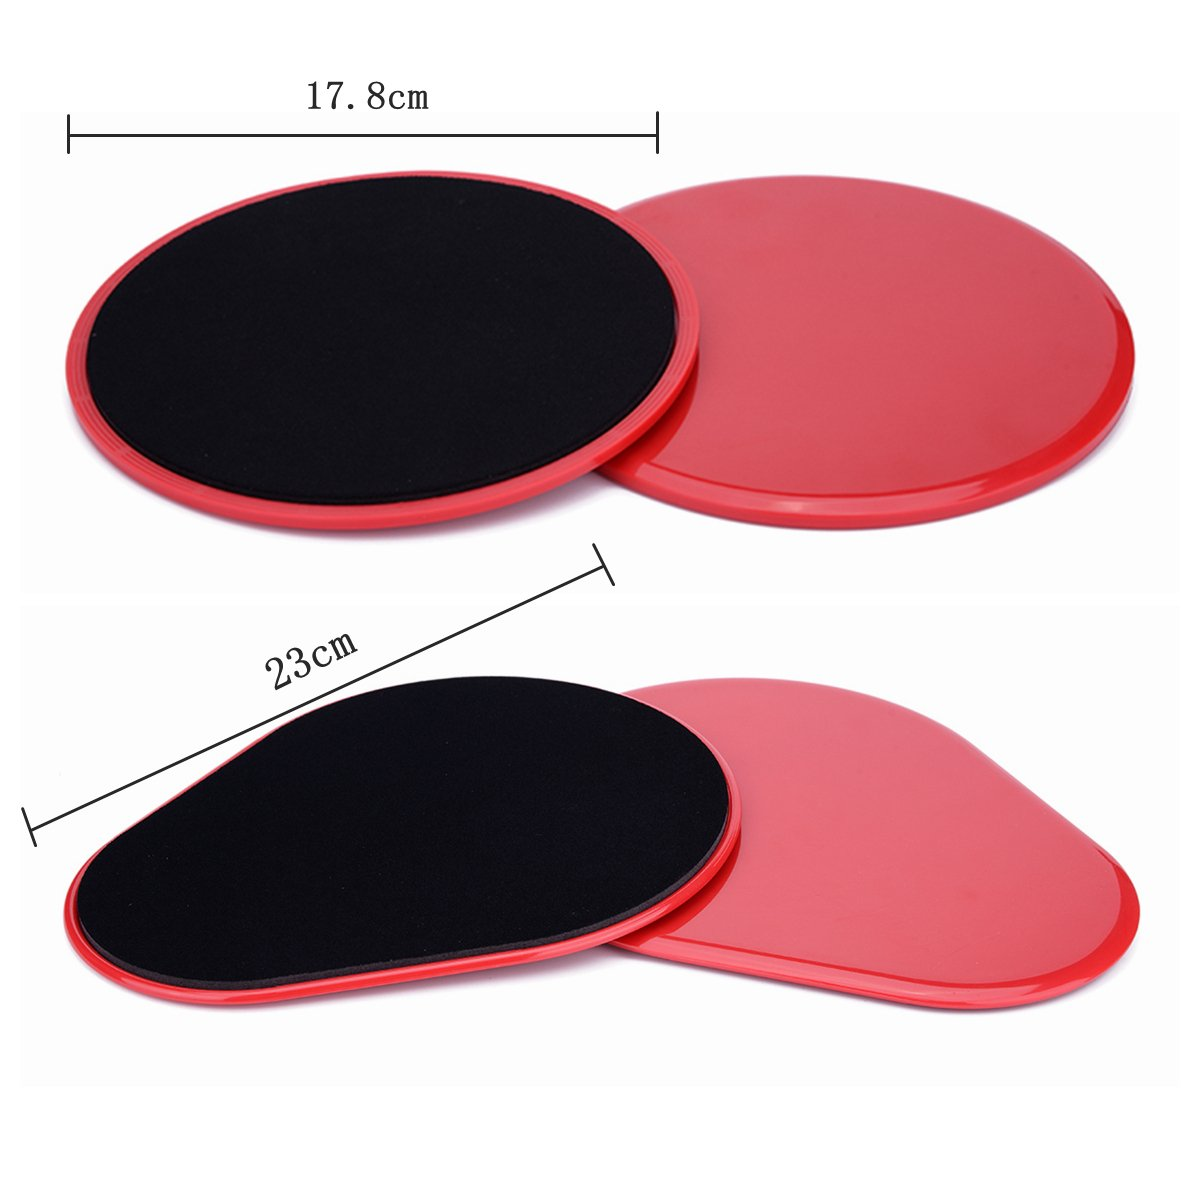 Core Slider - Core Workout Exercise Sliders, Extra Thickness Two-sided Gliding Discs Sliding Plate, 4pcs Fitness Core by She-Lin (Image #2)